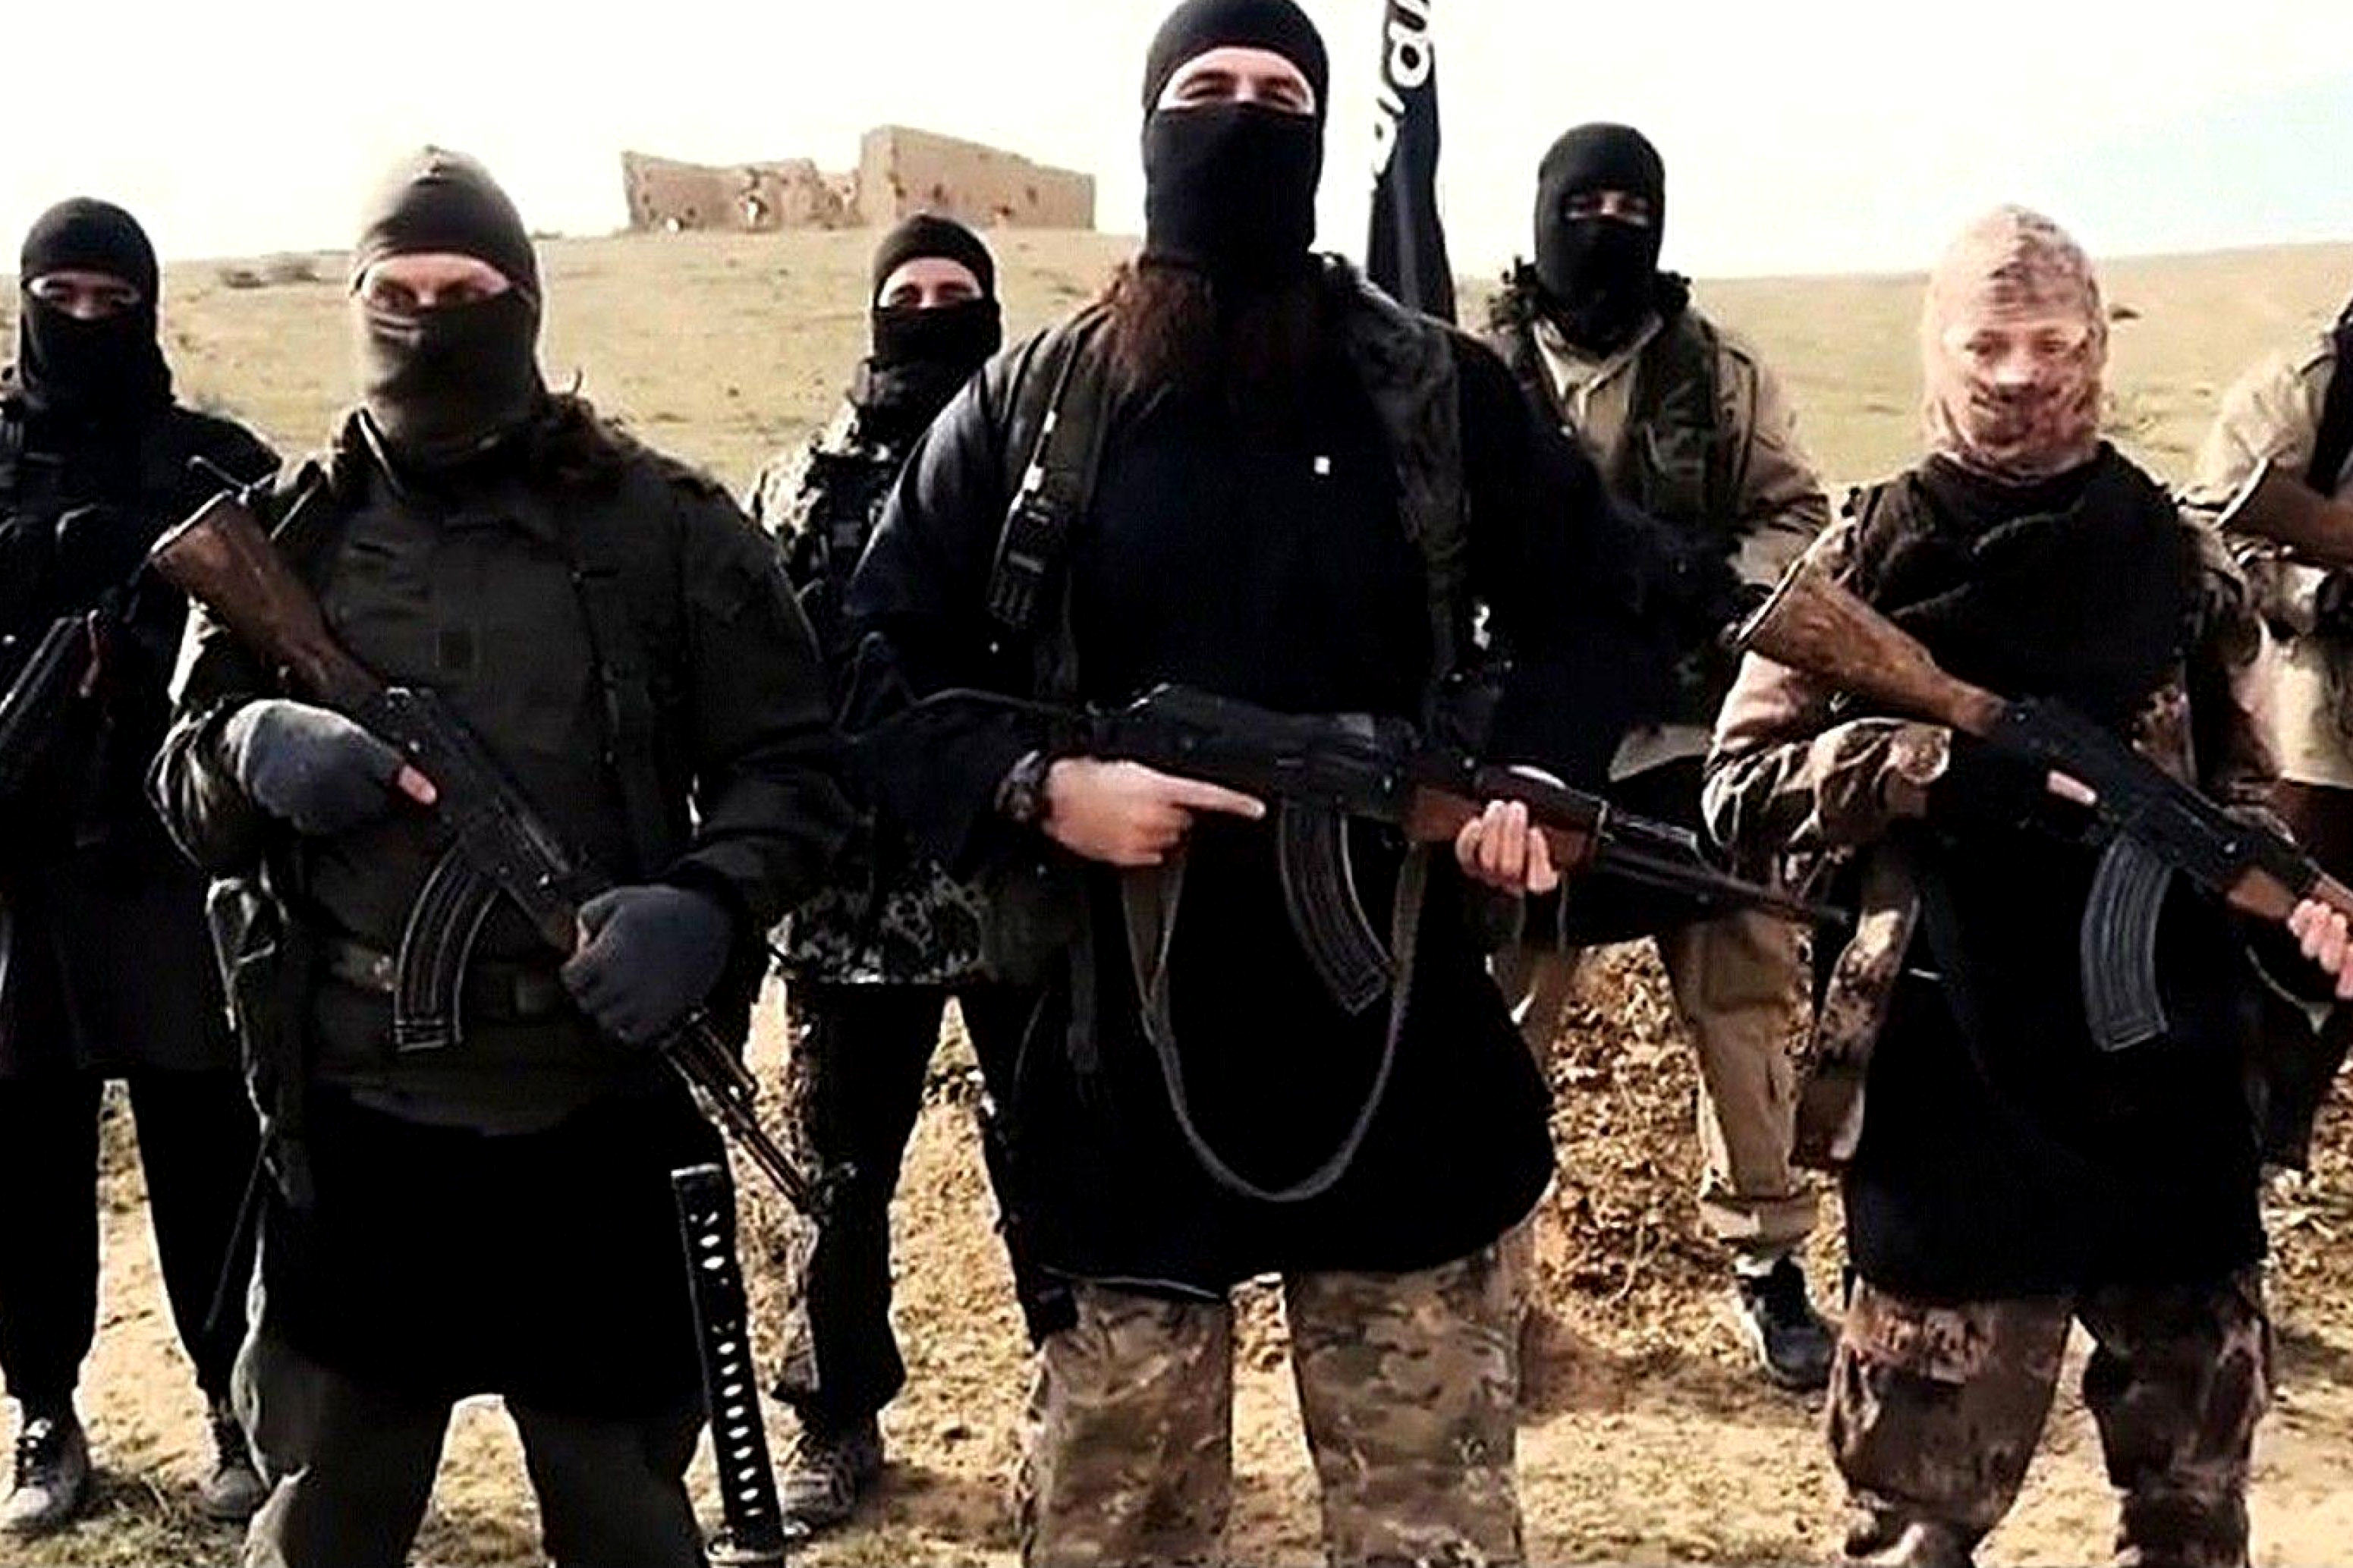 Texas Plumber Sues Car Dealer After Isis Seen Using His Old Truck 2642870a1